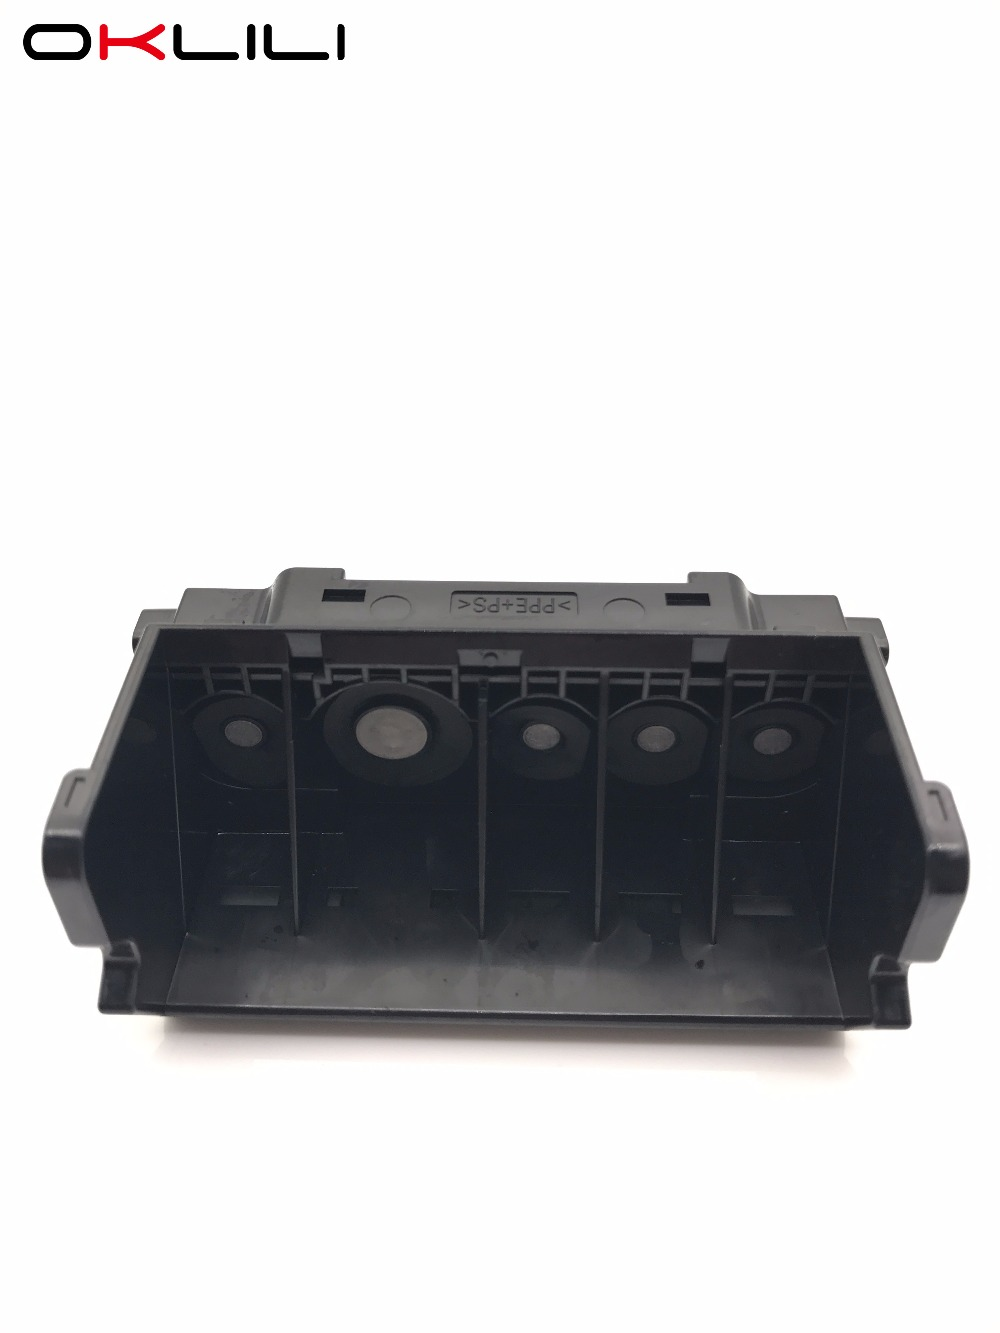 QY6-0073 Printhead ראש הדפסה עבור Canon iP3680 iP3680 MP540 MP560 MP568 MP620 MX860 MX870 MX870 MX878 MG5140 MG5180 MG5150 MP550